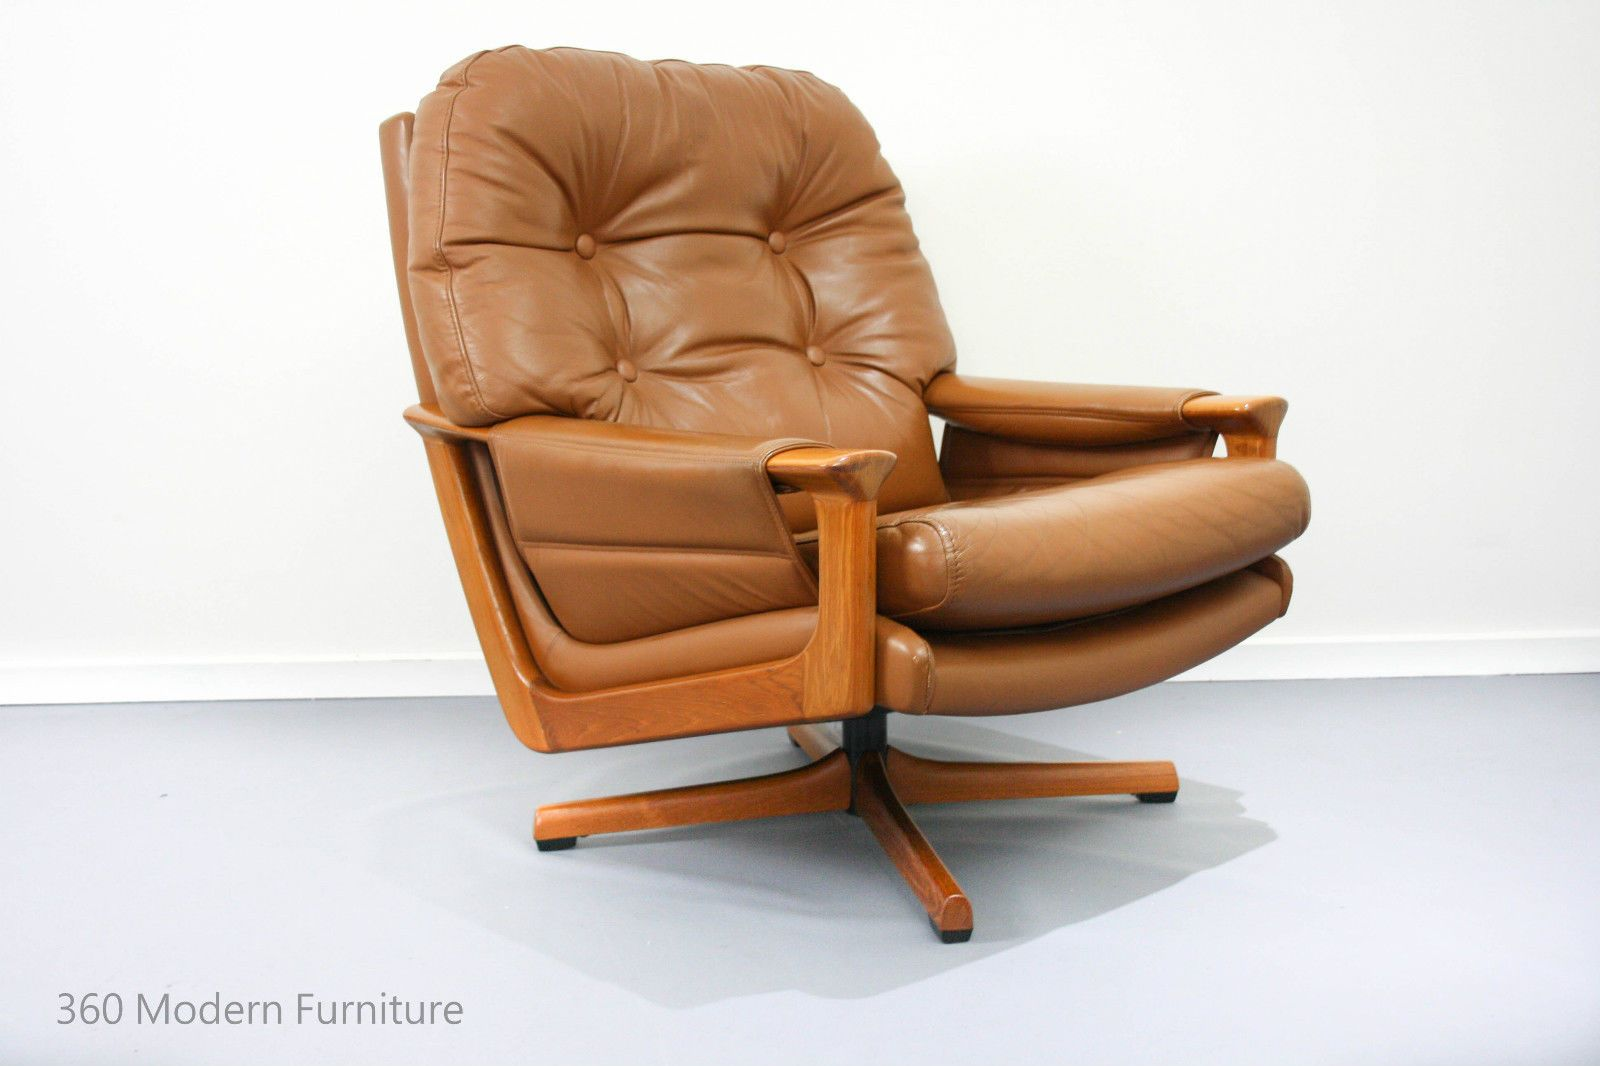 Astonishing Mid Century Tessa Swivel Armchair Retro Vintage Leather Caraccident5 Cool Chair Designs And Ideas Caraccident5Info